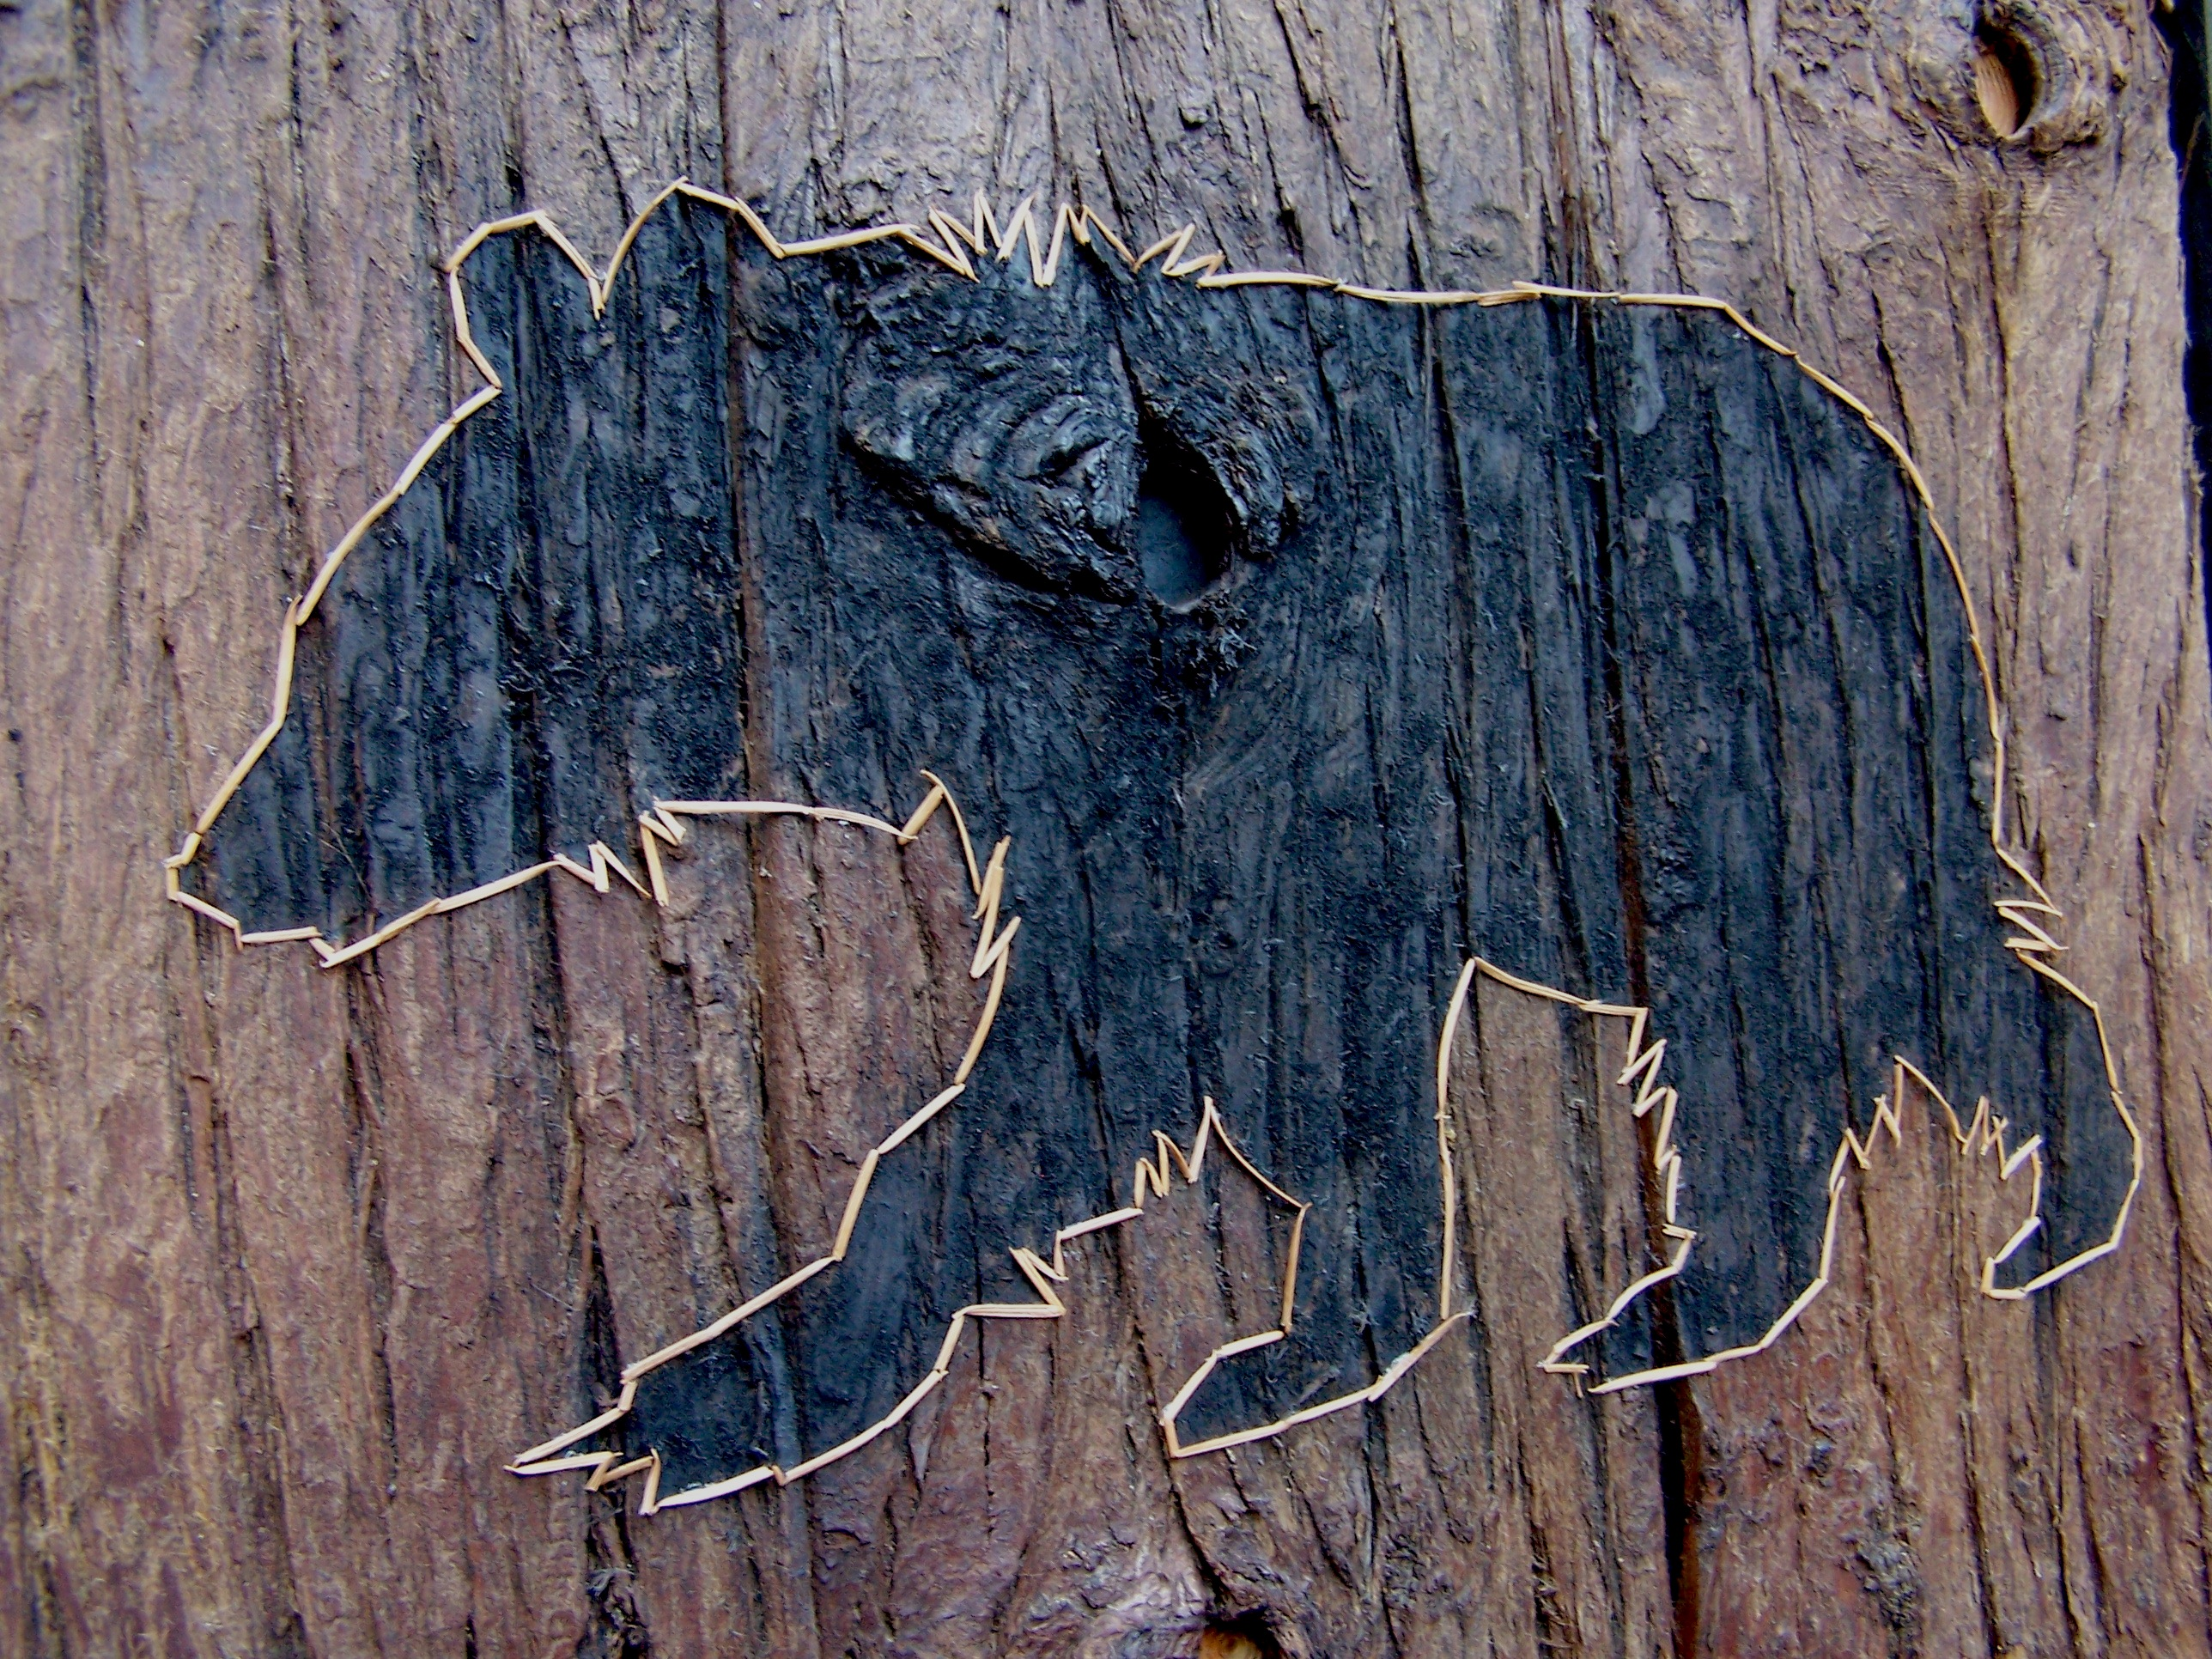 Black Bear 29 x 29 in